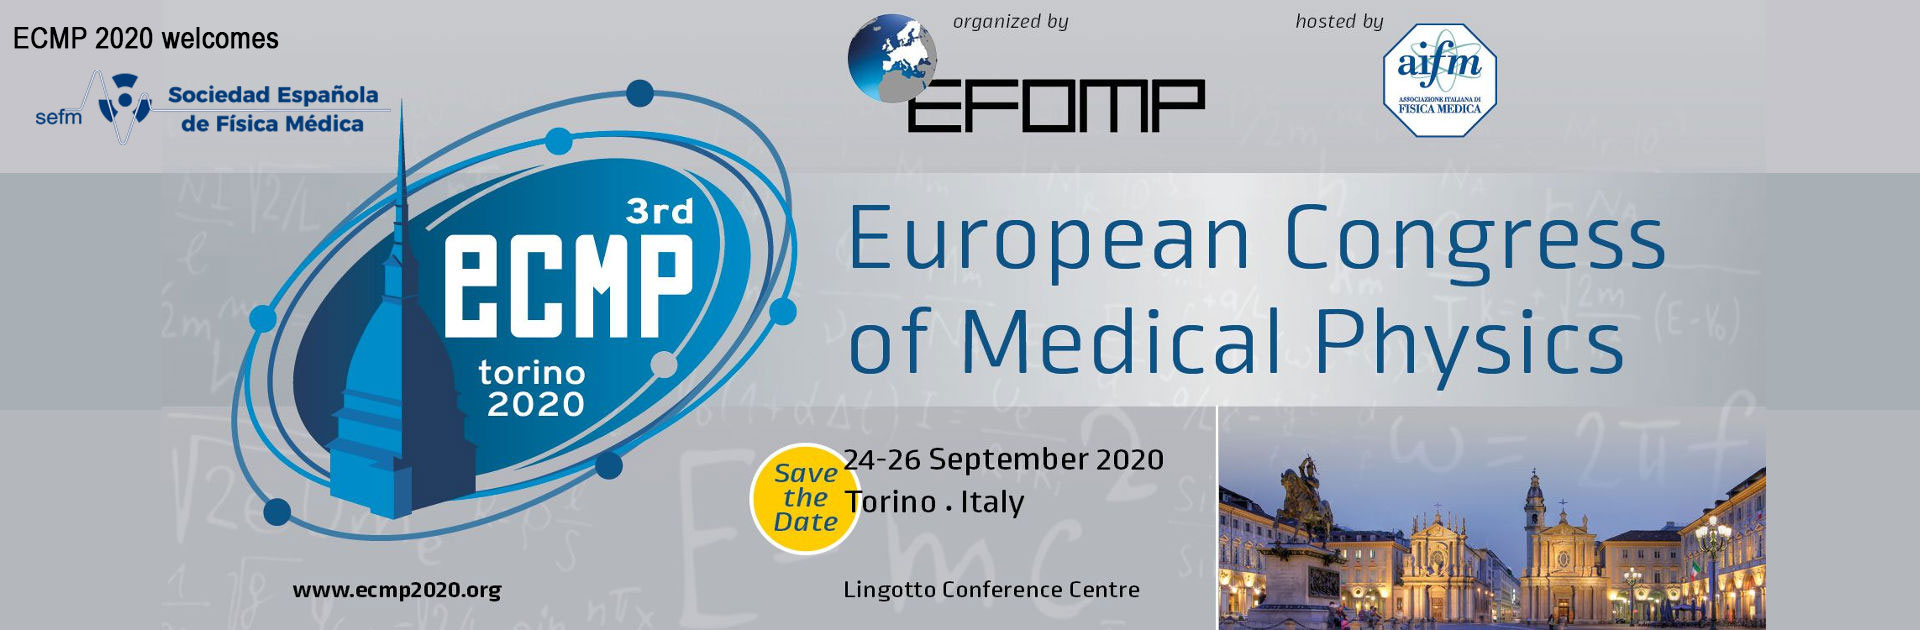 3rd European Congress of Medical Physics